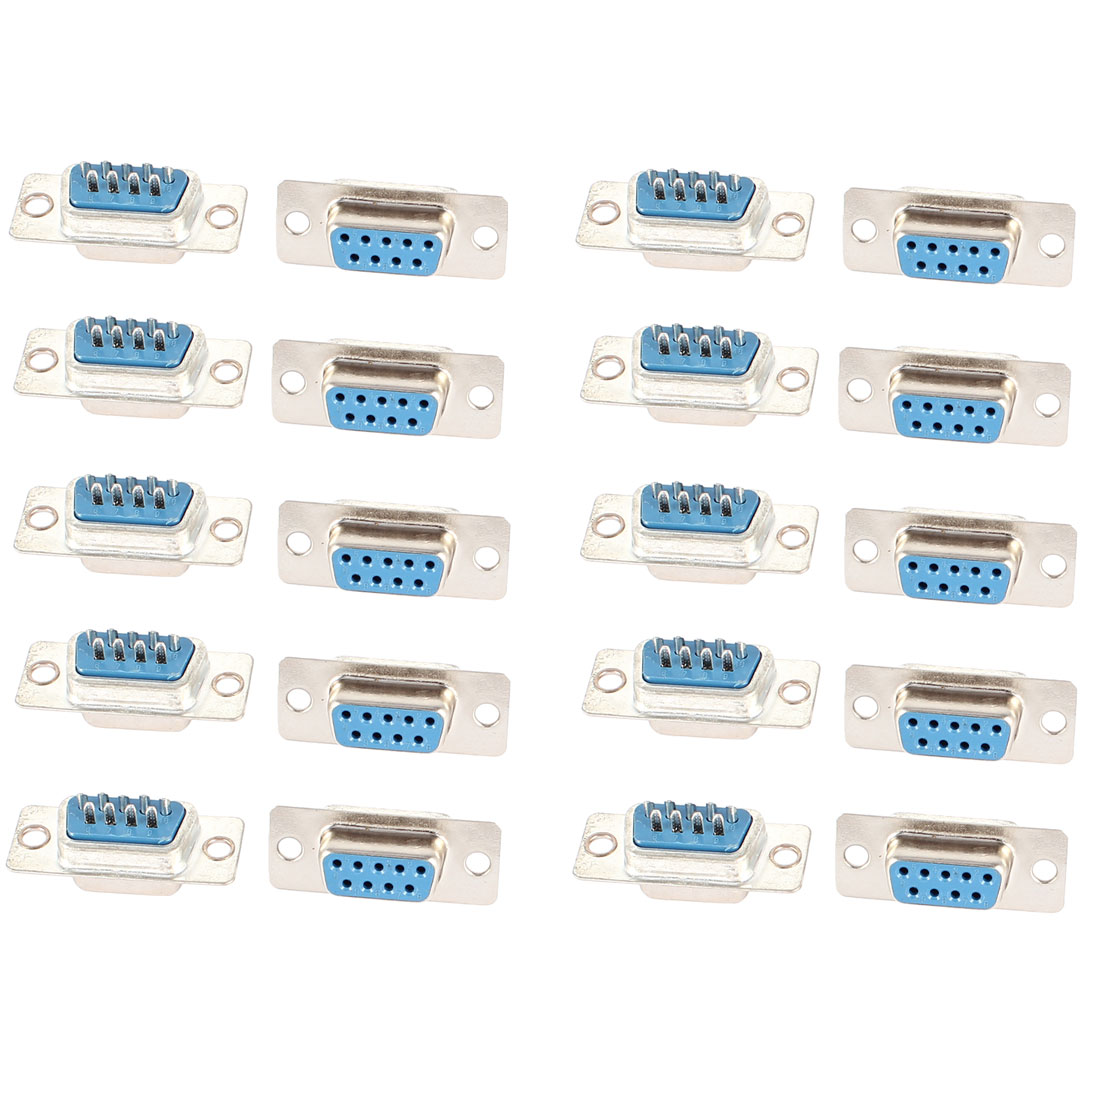 20 PCS Solder Type DB9 9 Pins Female PC Converter Cable Plug Connector